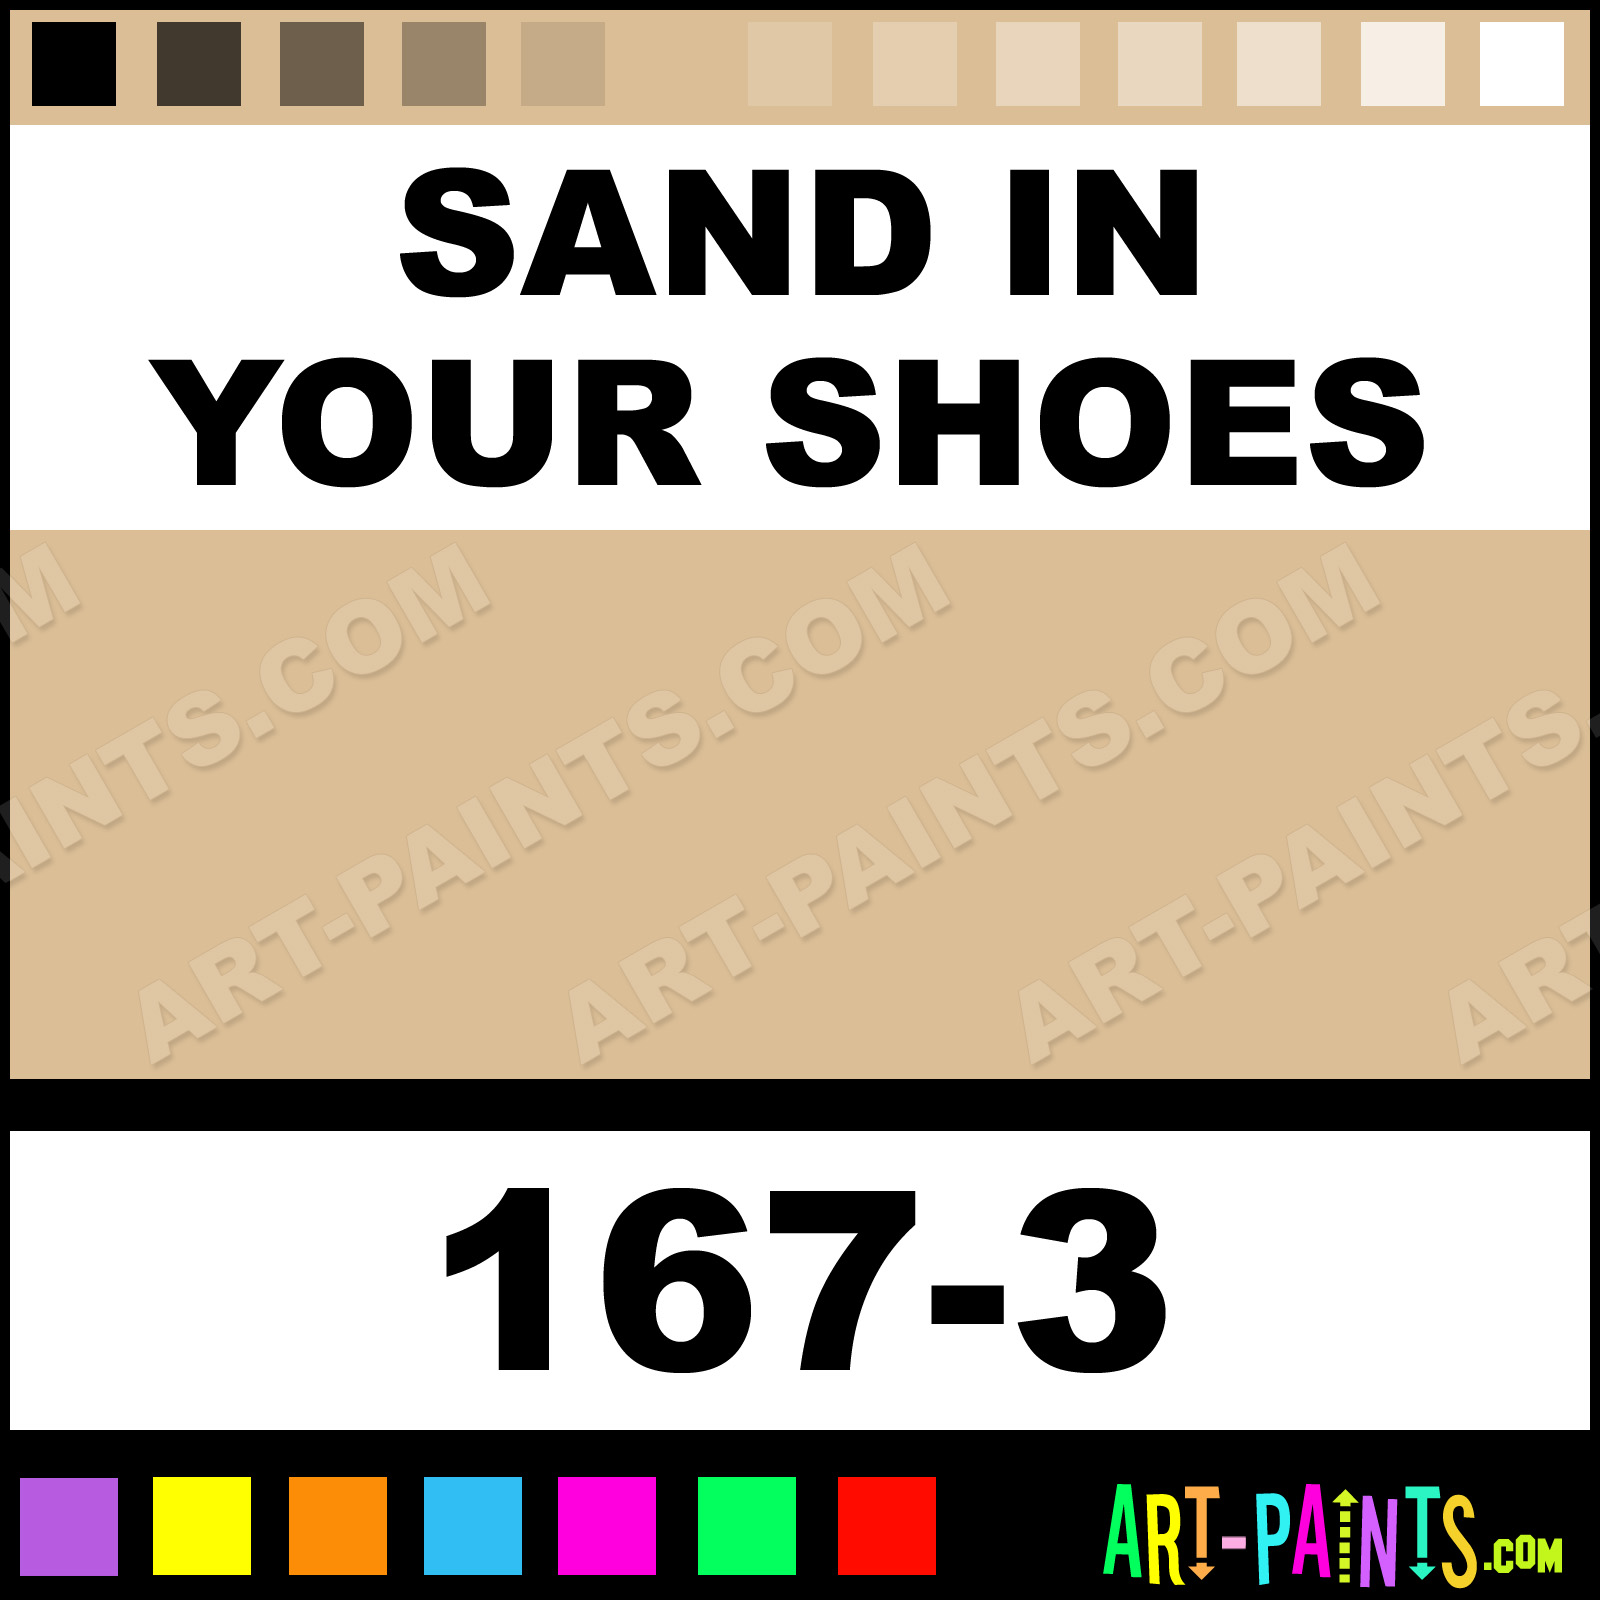 Featuring - Sand In Your Shoes Ultra Ceramic Ceramic Paint